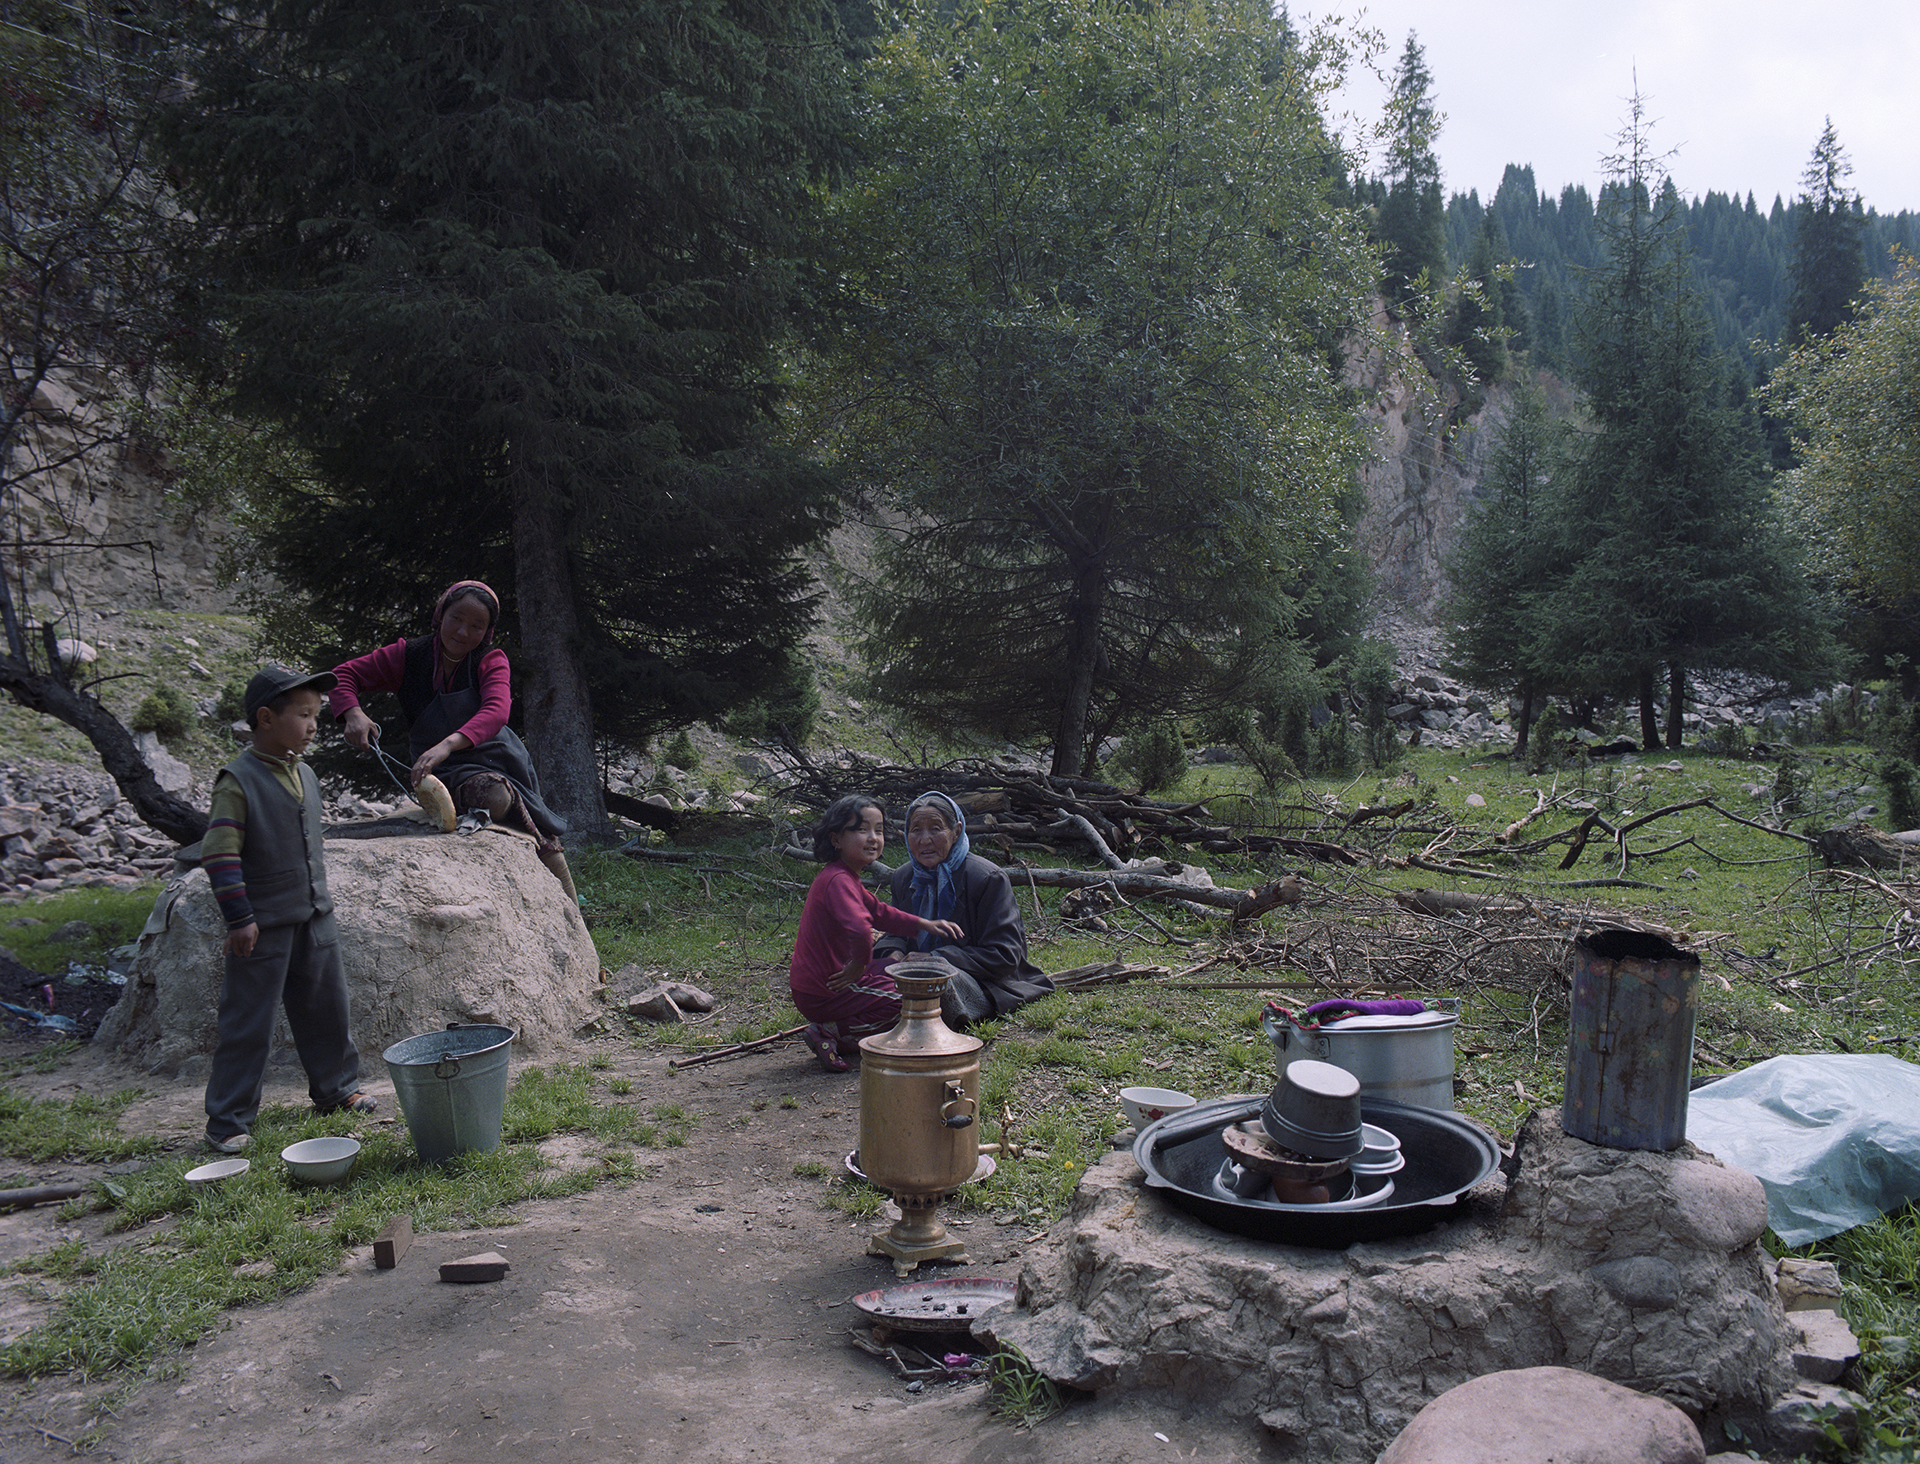 2007 Xinjiang - around the yurt with the family. The girl left id baking bread in the traditional stove built from local stones and mud.